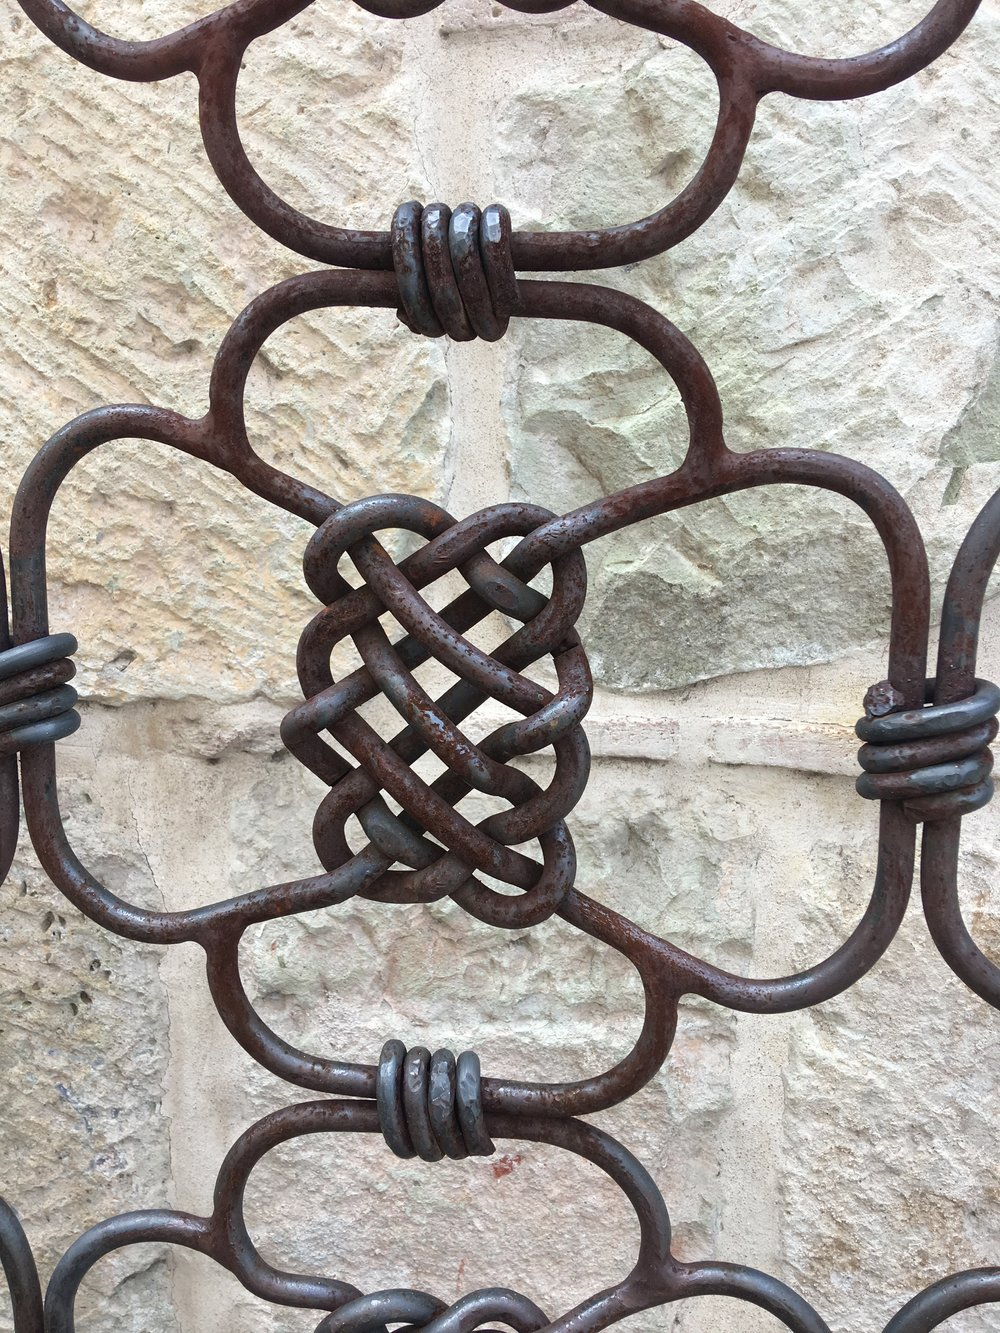 This was part of a huge gate that featured these interlocking forged metal pieces.  So cool.